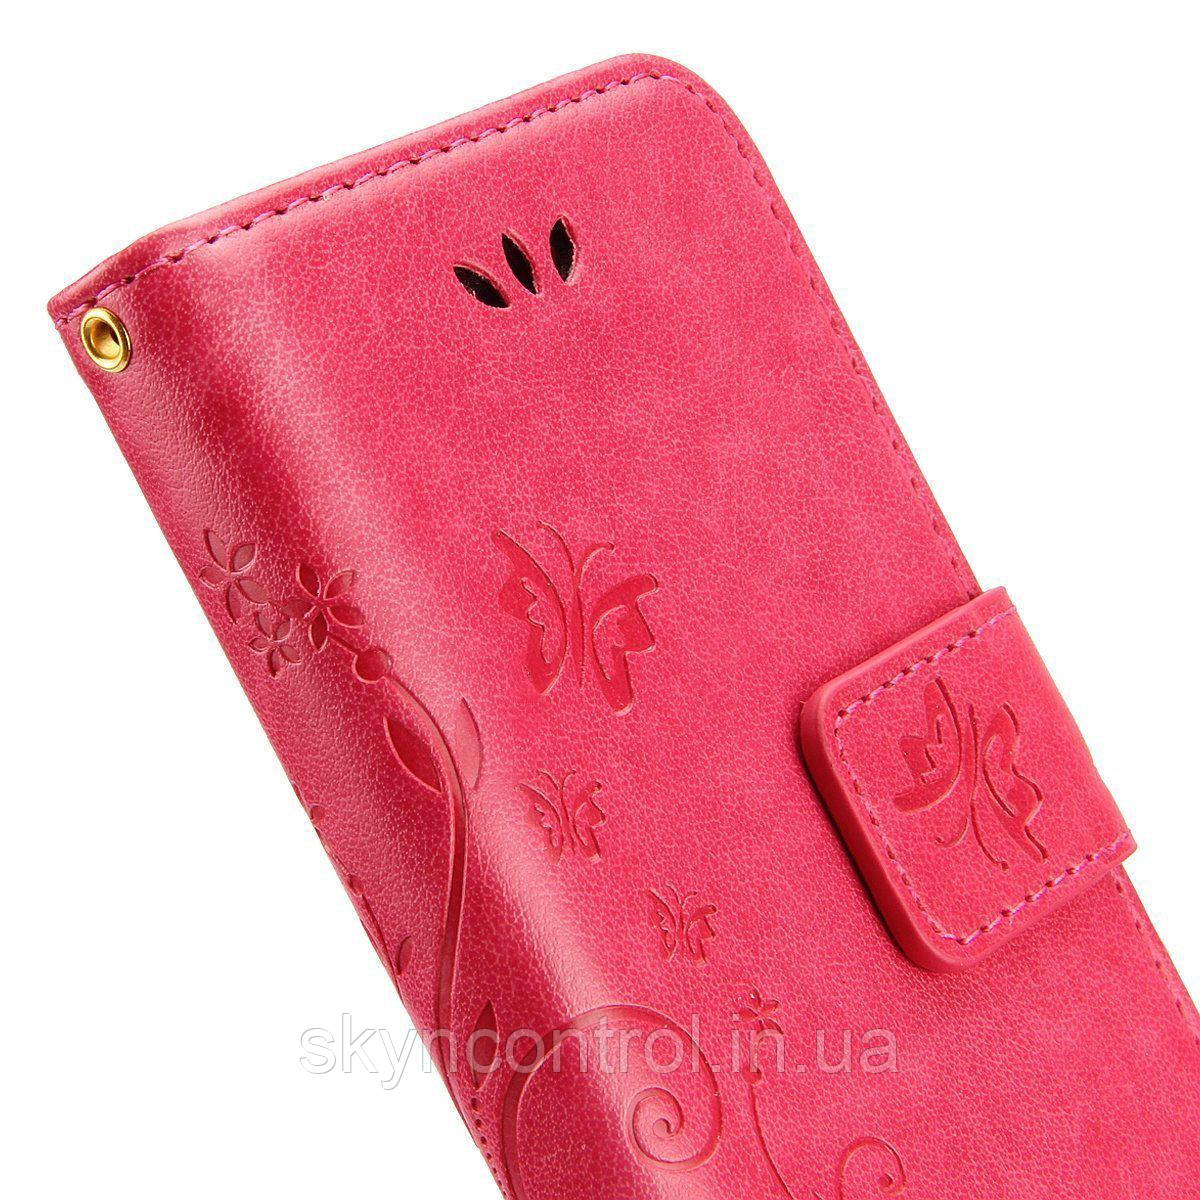 Кожаный чехол для iPhone 6/6s Korecase iPhone 6/6S Case Leather Flip Cover Butterfly & Flower Pattern pink